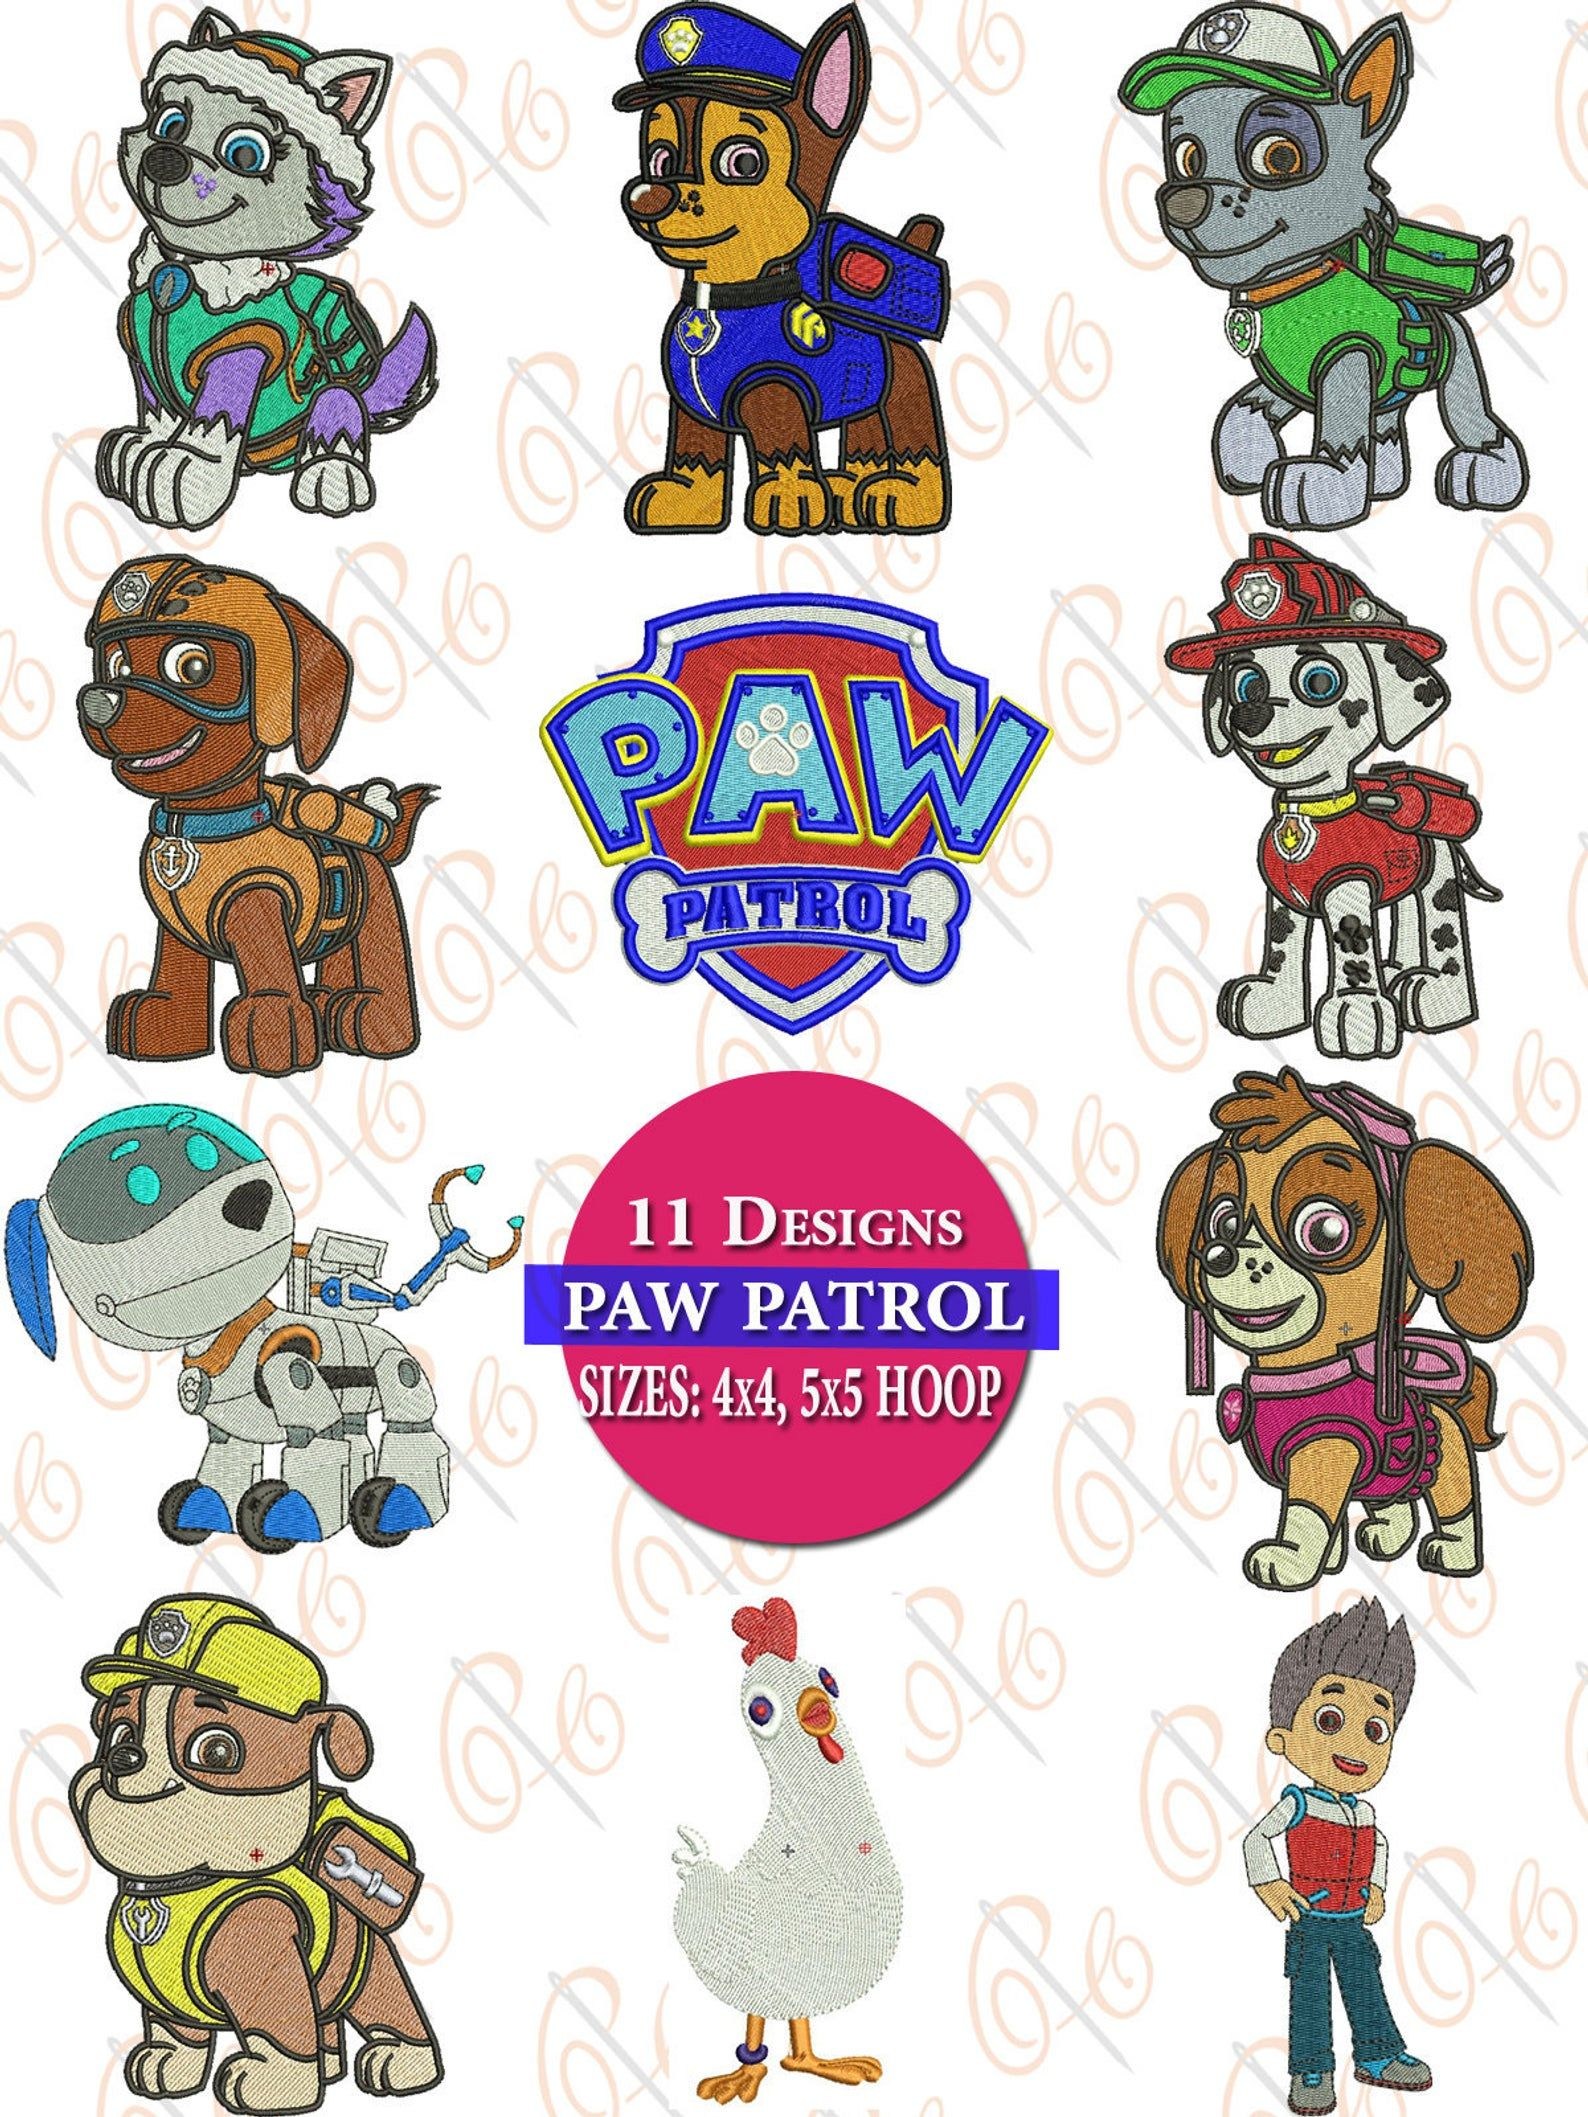 Paw Patrol Machine Embroidery Design, (Set Of 11), Chase, Marshal, Zuma, Skye, Robo Dog, Everest, Rocky, paw patrol embroidery designs - Machine embroidery patterns, Embroidery design sets, Computerized embroidery machine, Embroidery designs, Machine embroidery, Embroidery patterns - MemoryCard